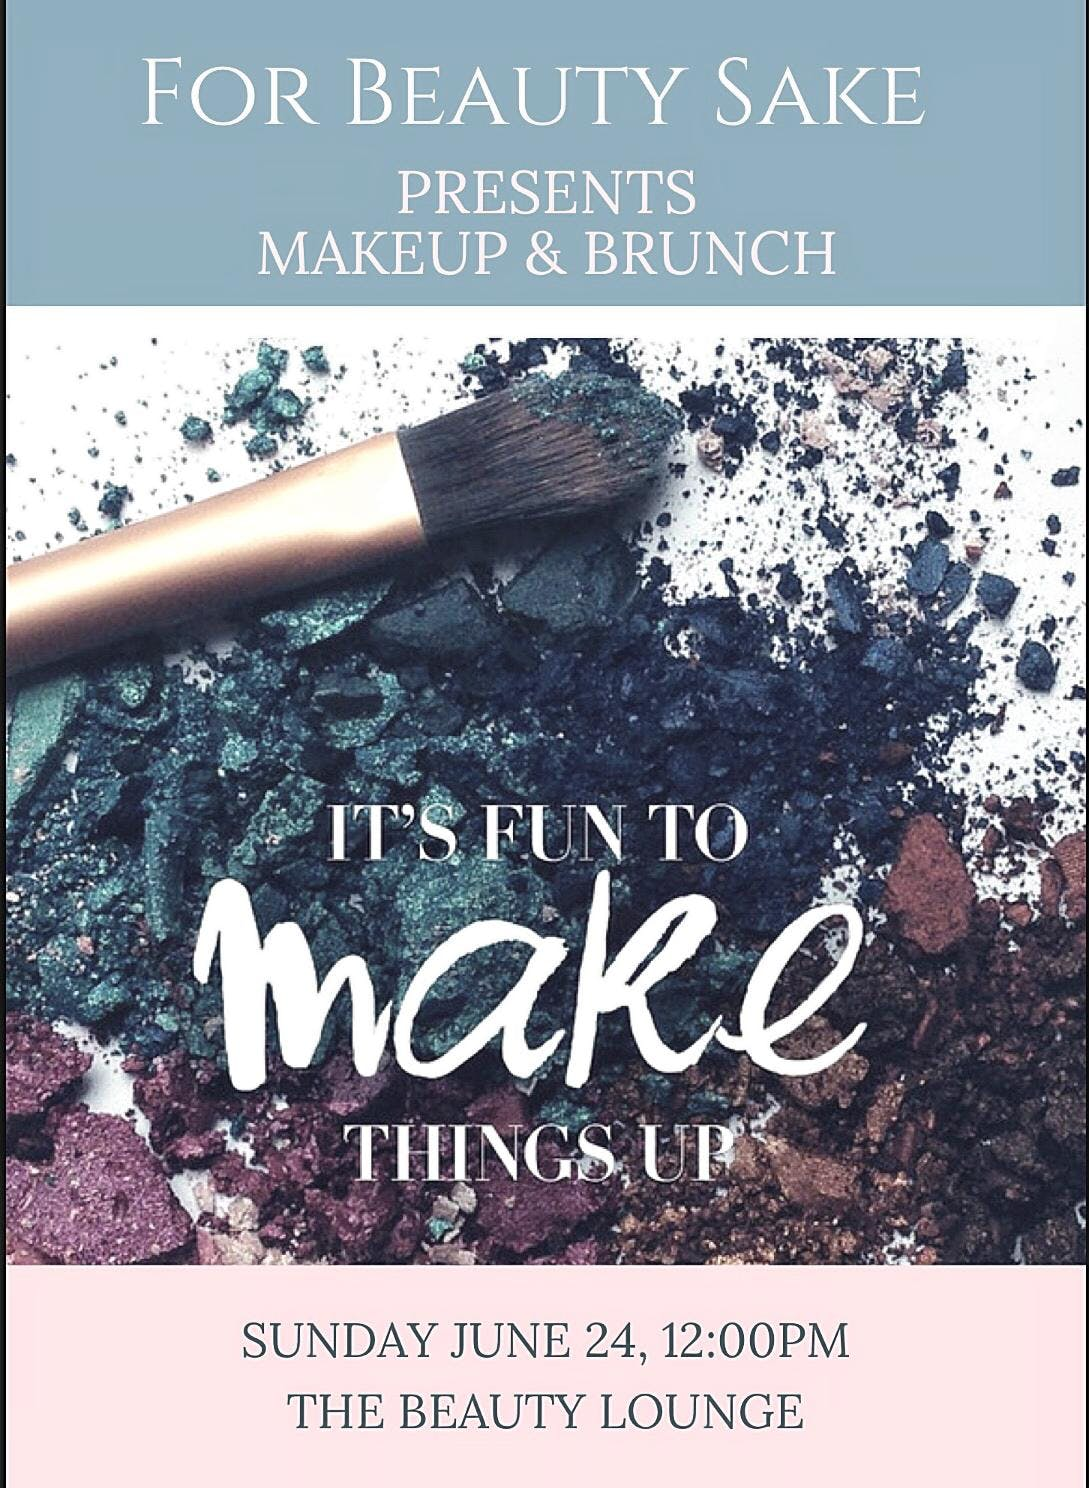 For Beauty Sake Presents Makeup & Brunch